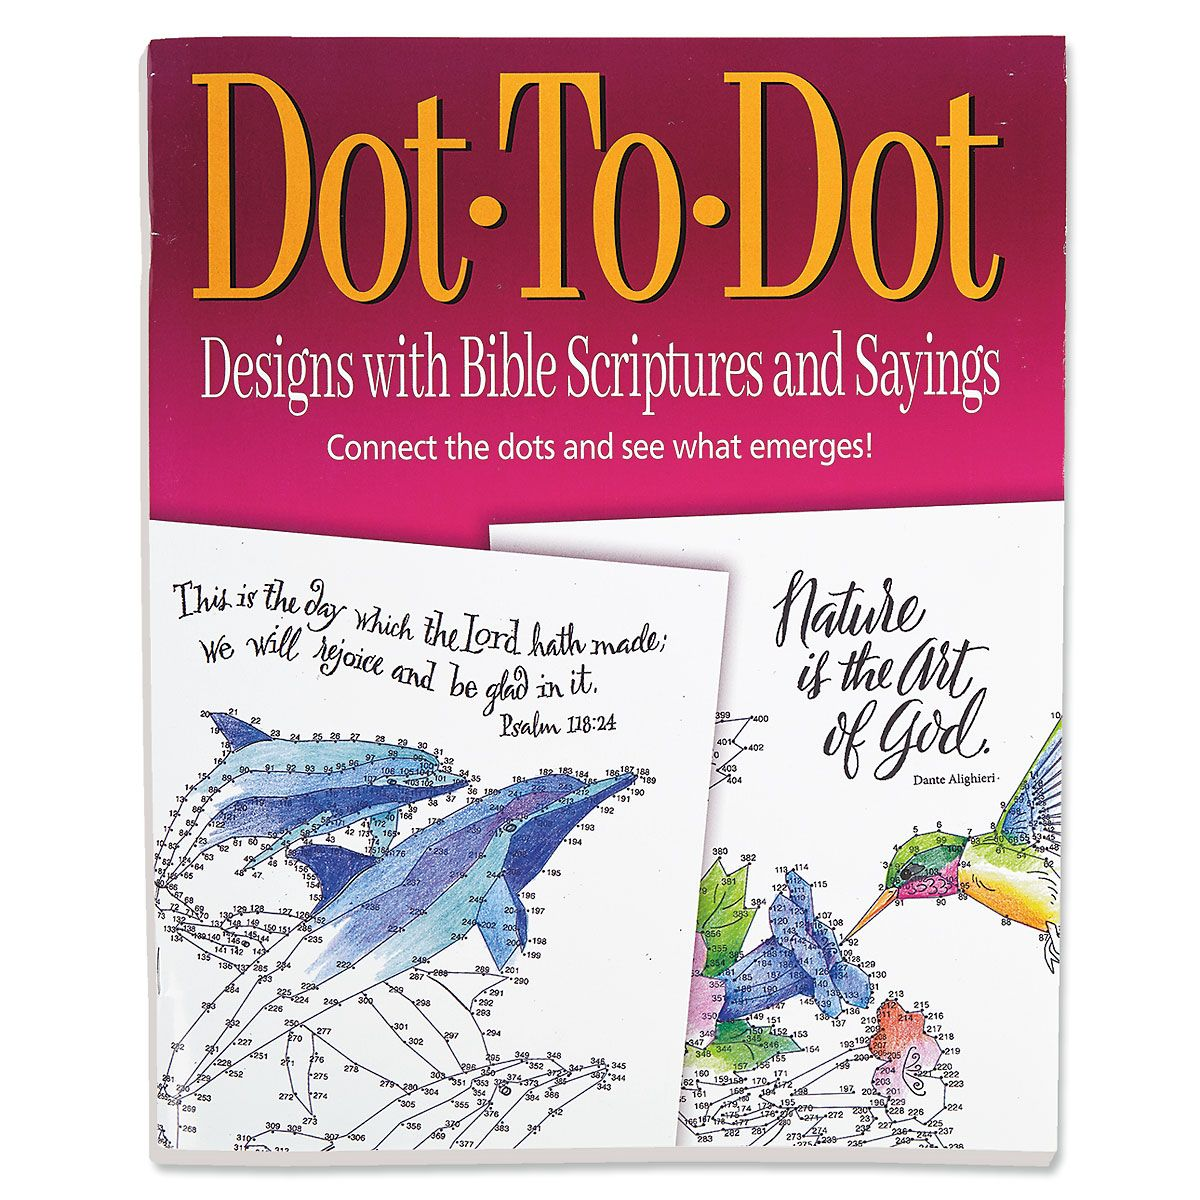 Biblical Dot-To-Dot Designs Book